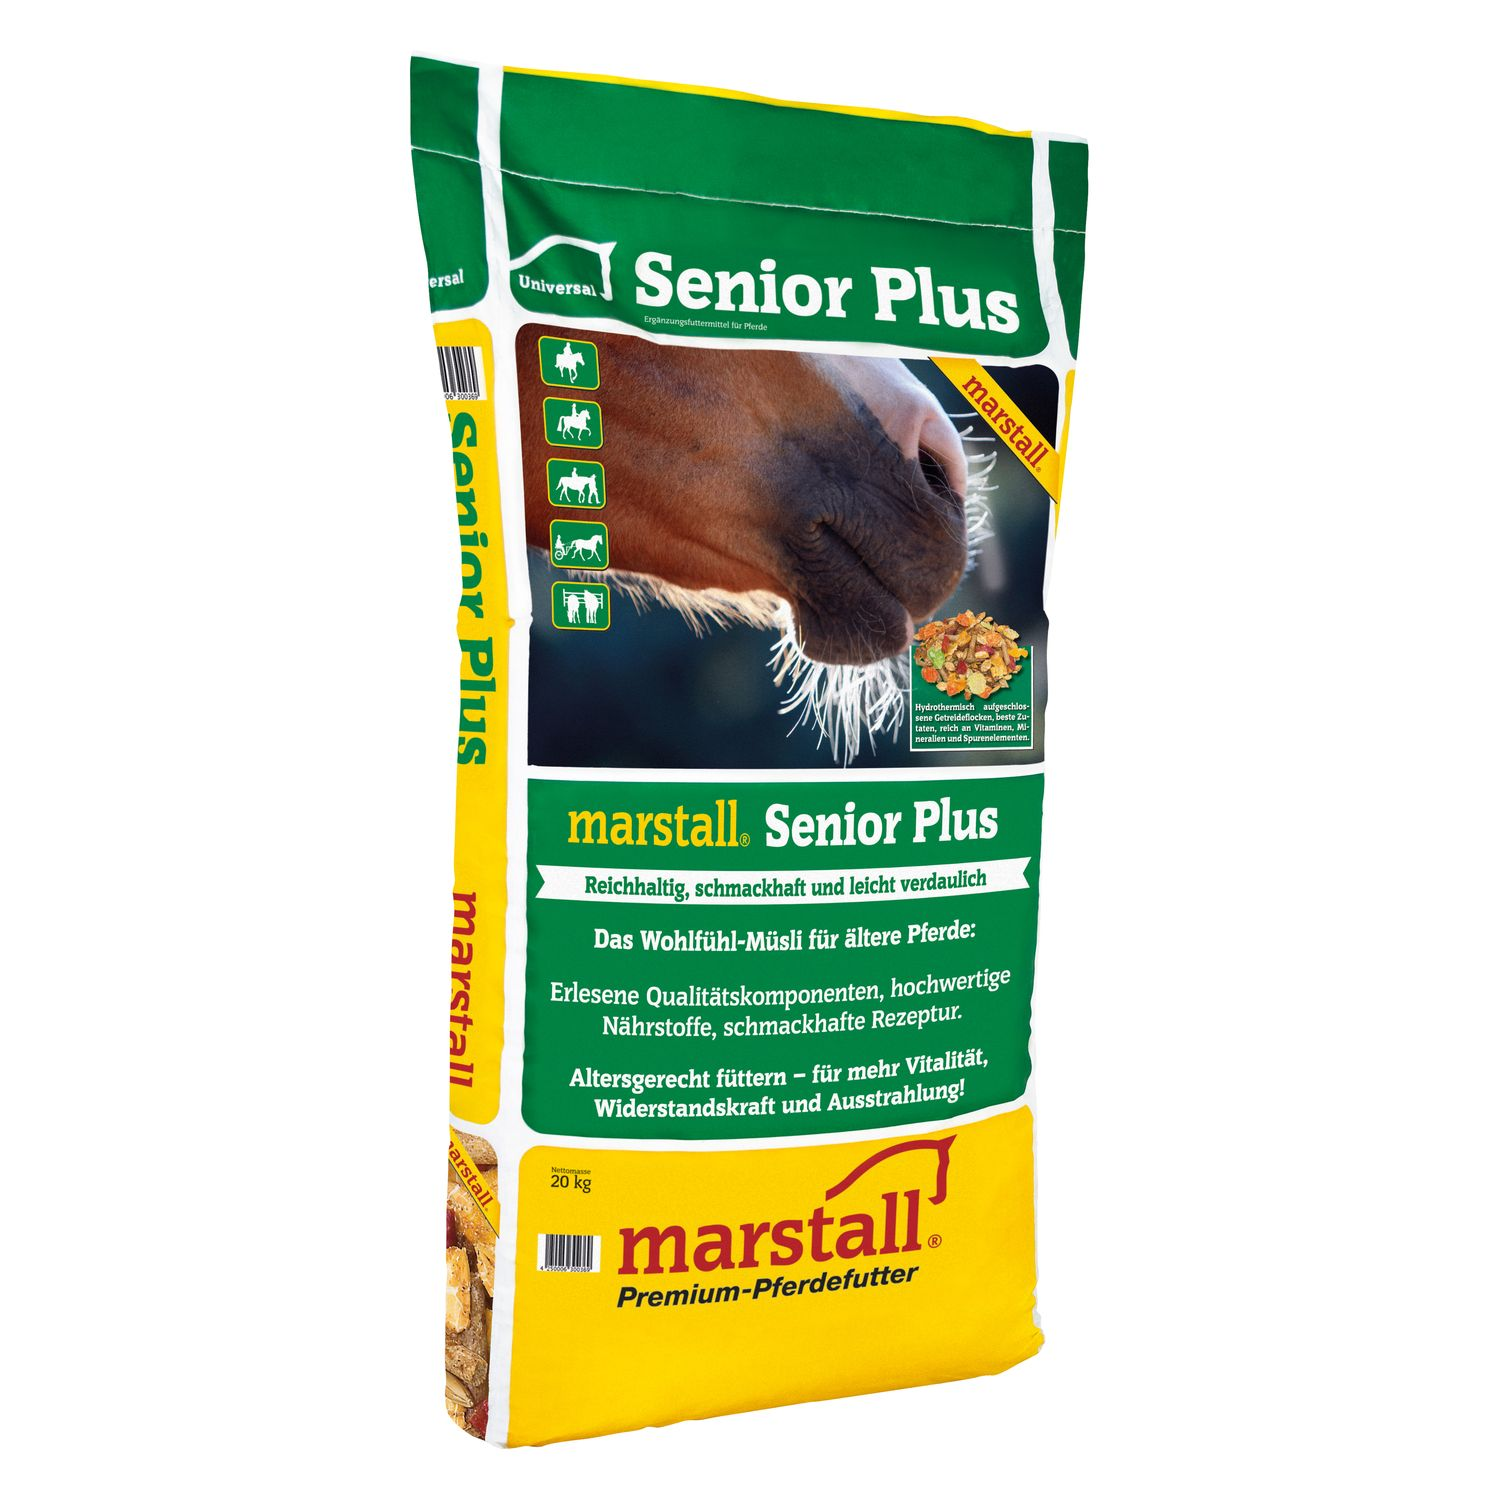 marstall Senior-Plus